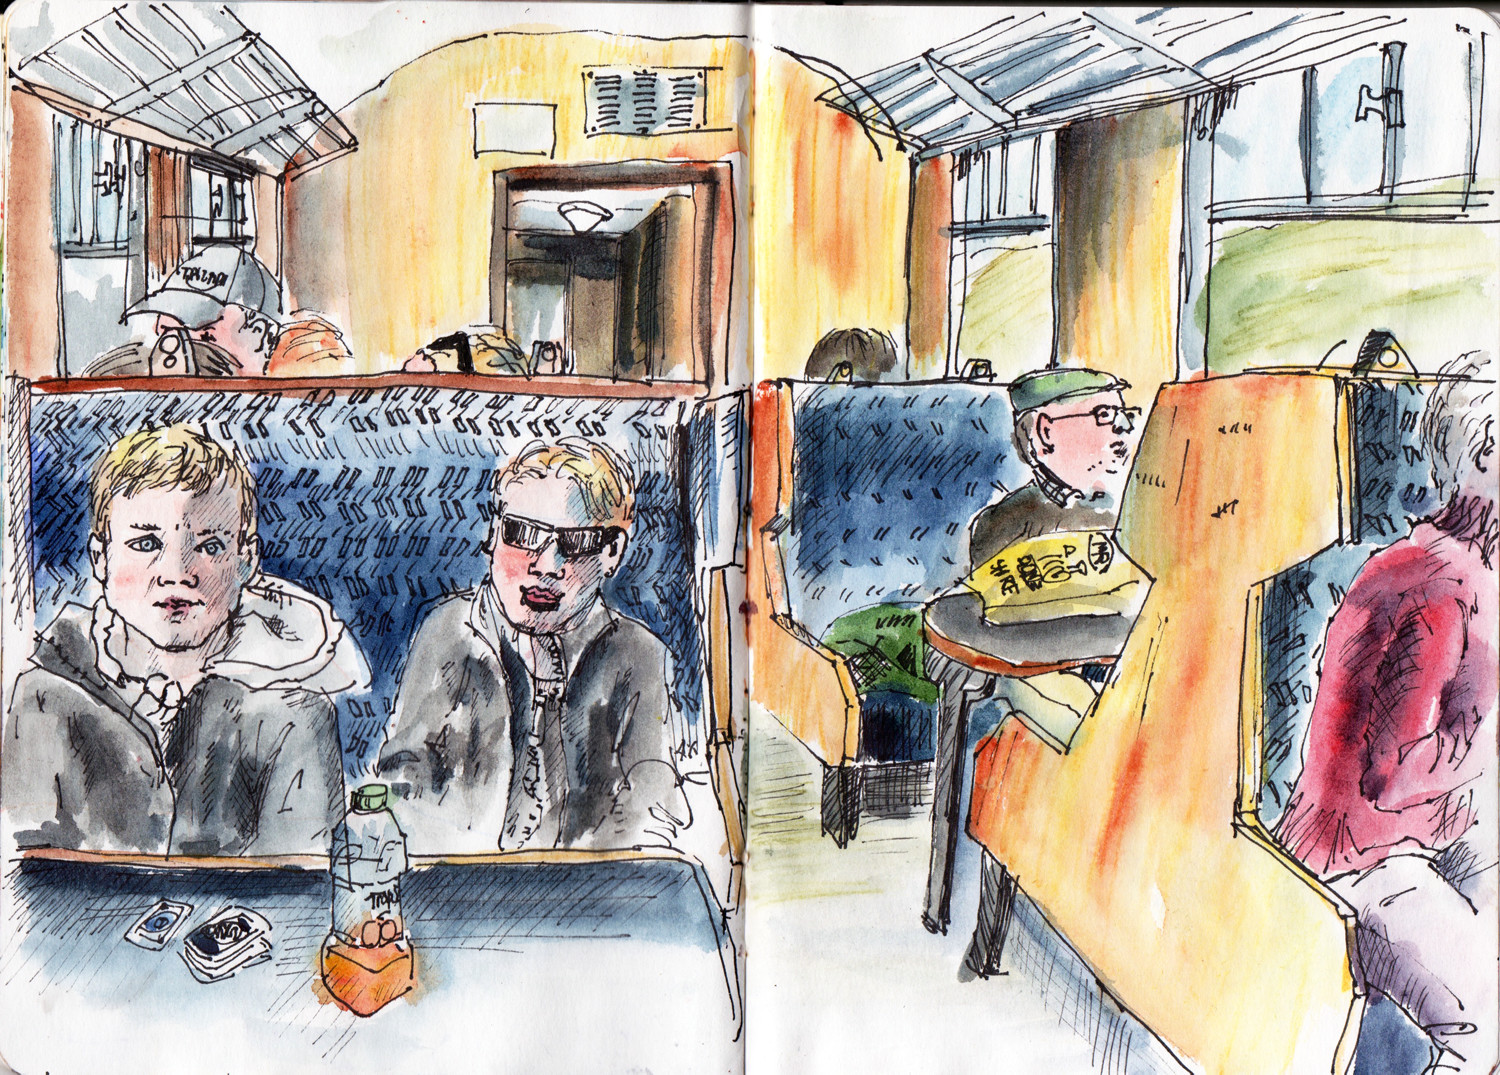 Return train journey in pen and watercolour